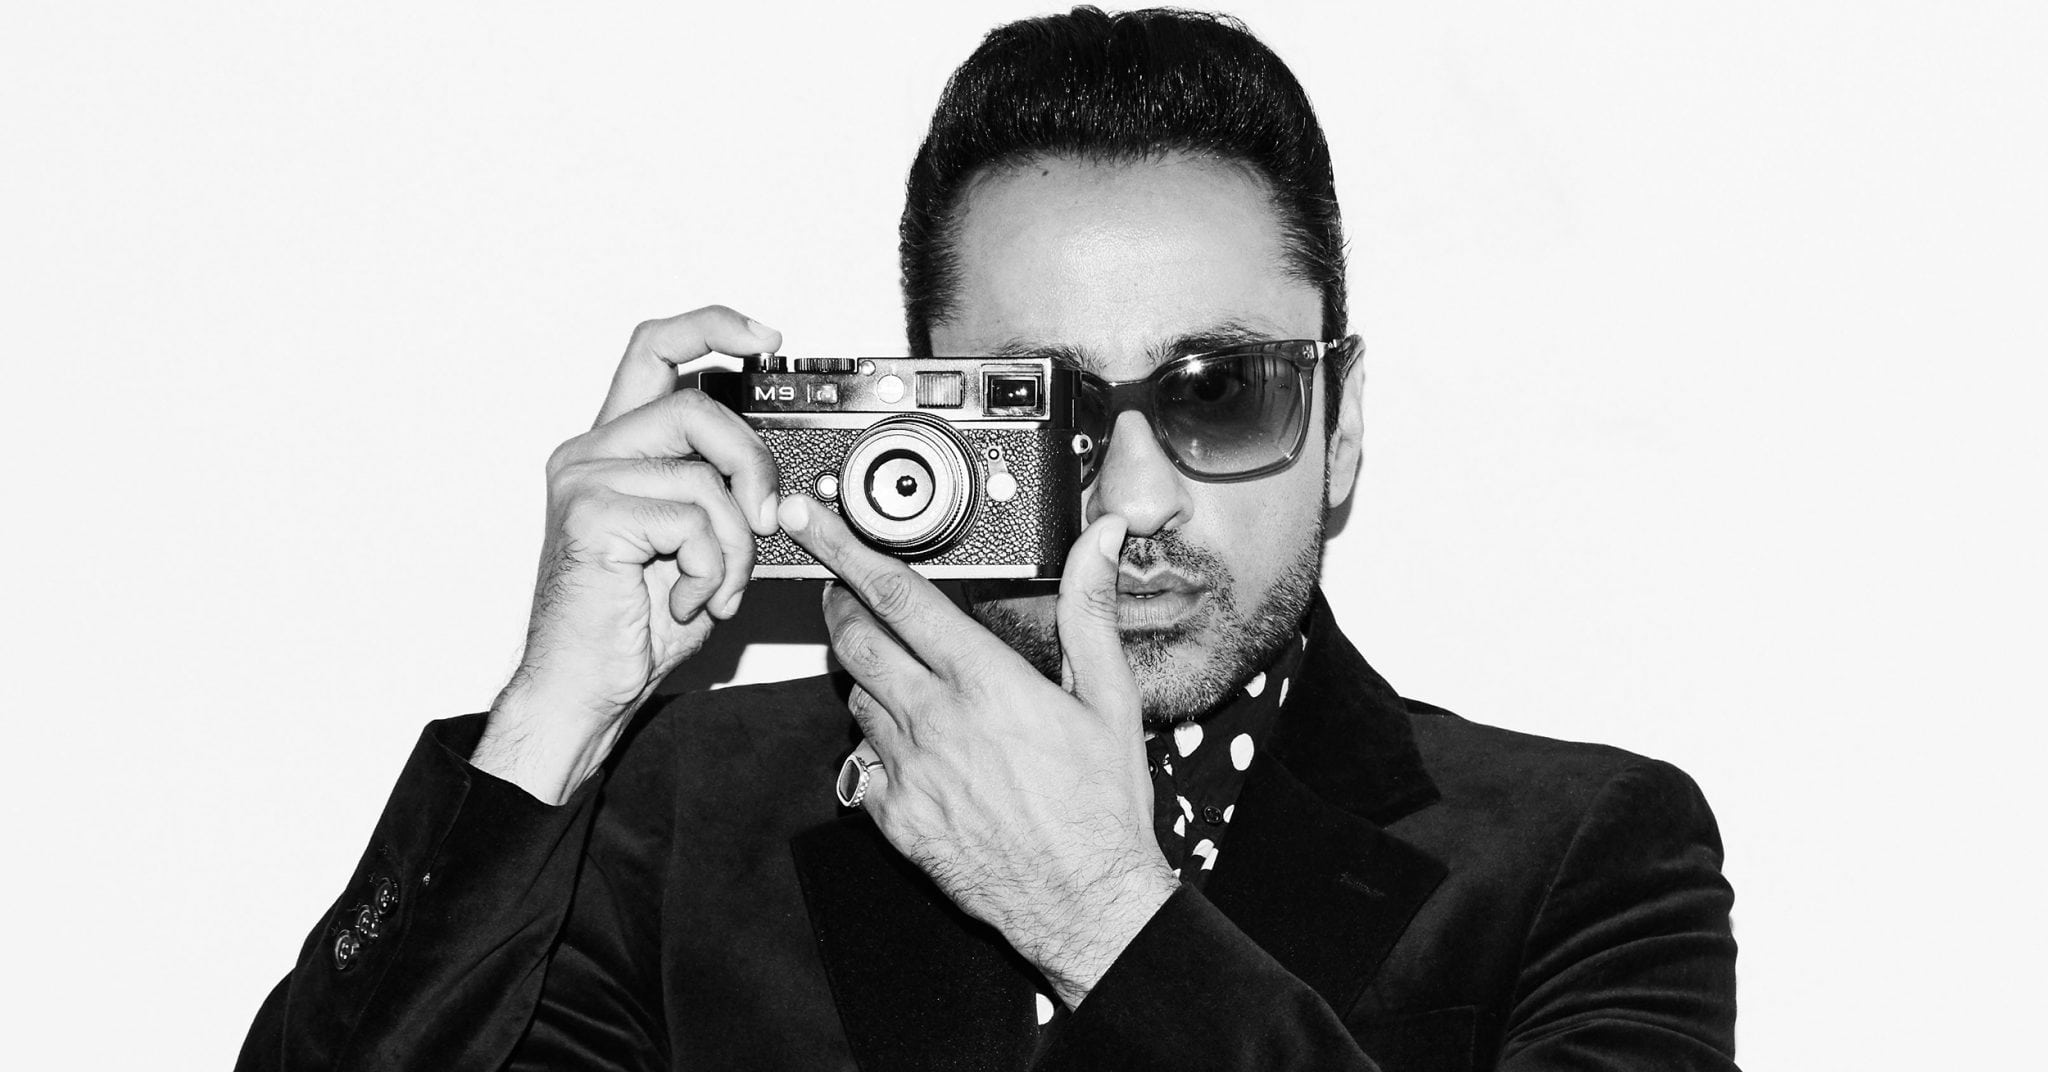 Iconic Photographer & Lecturer, Ram Shergill, Shares His Industry Secrets